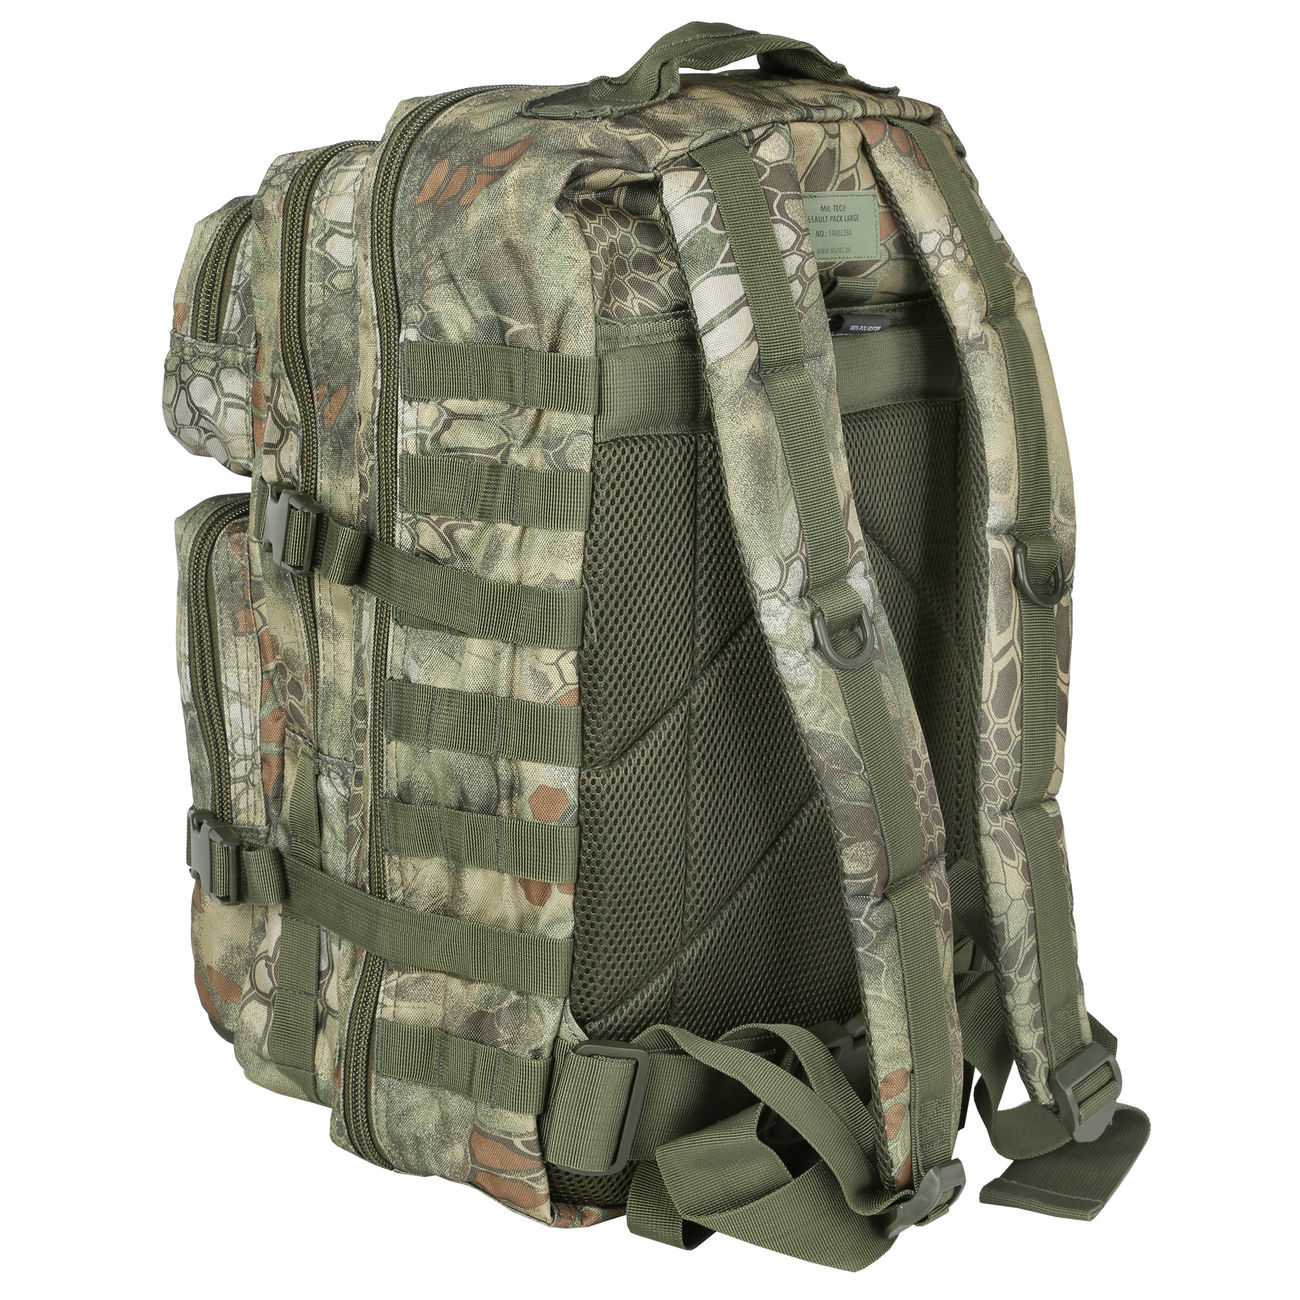 Mil-Tec Rucksack US Assault Pack II 40 Liter mandra wood 3